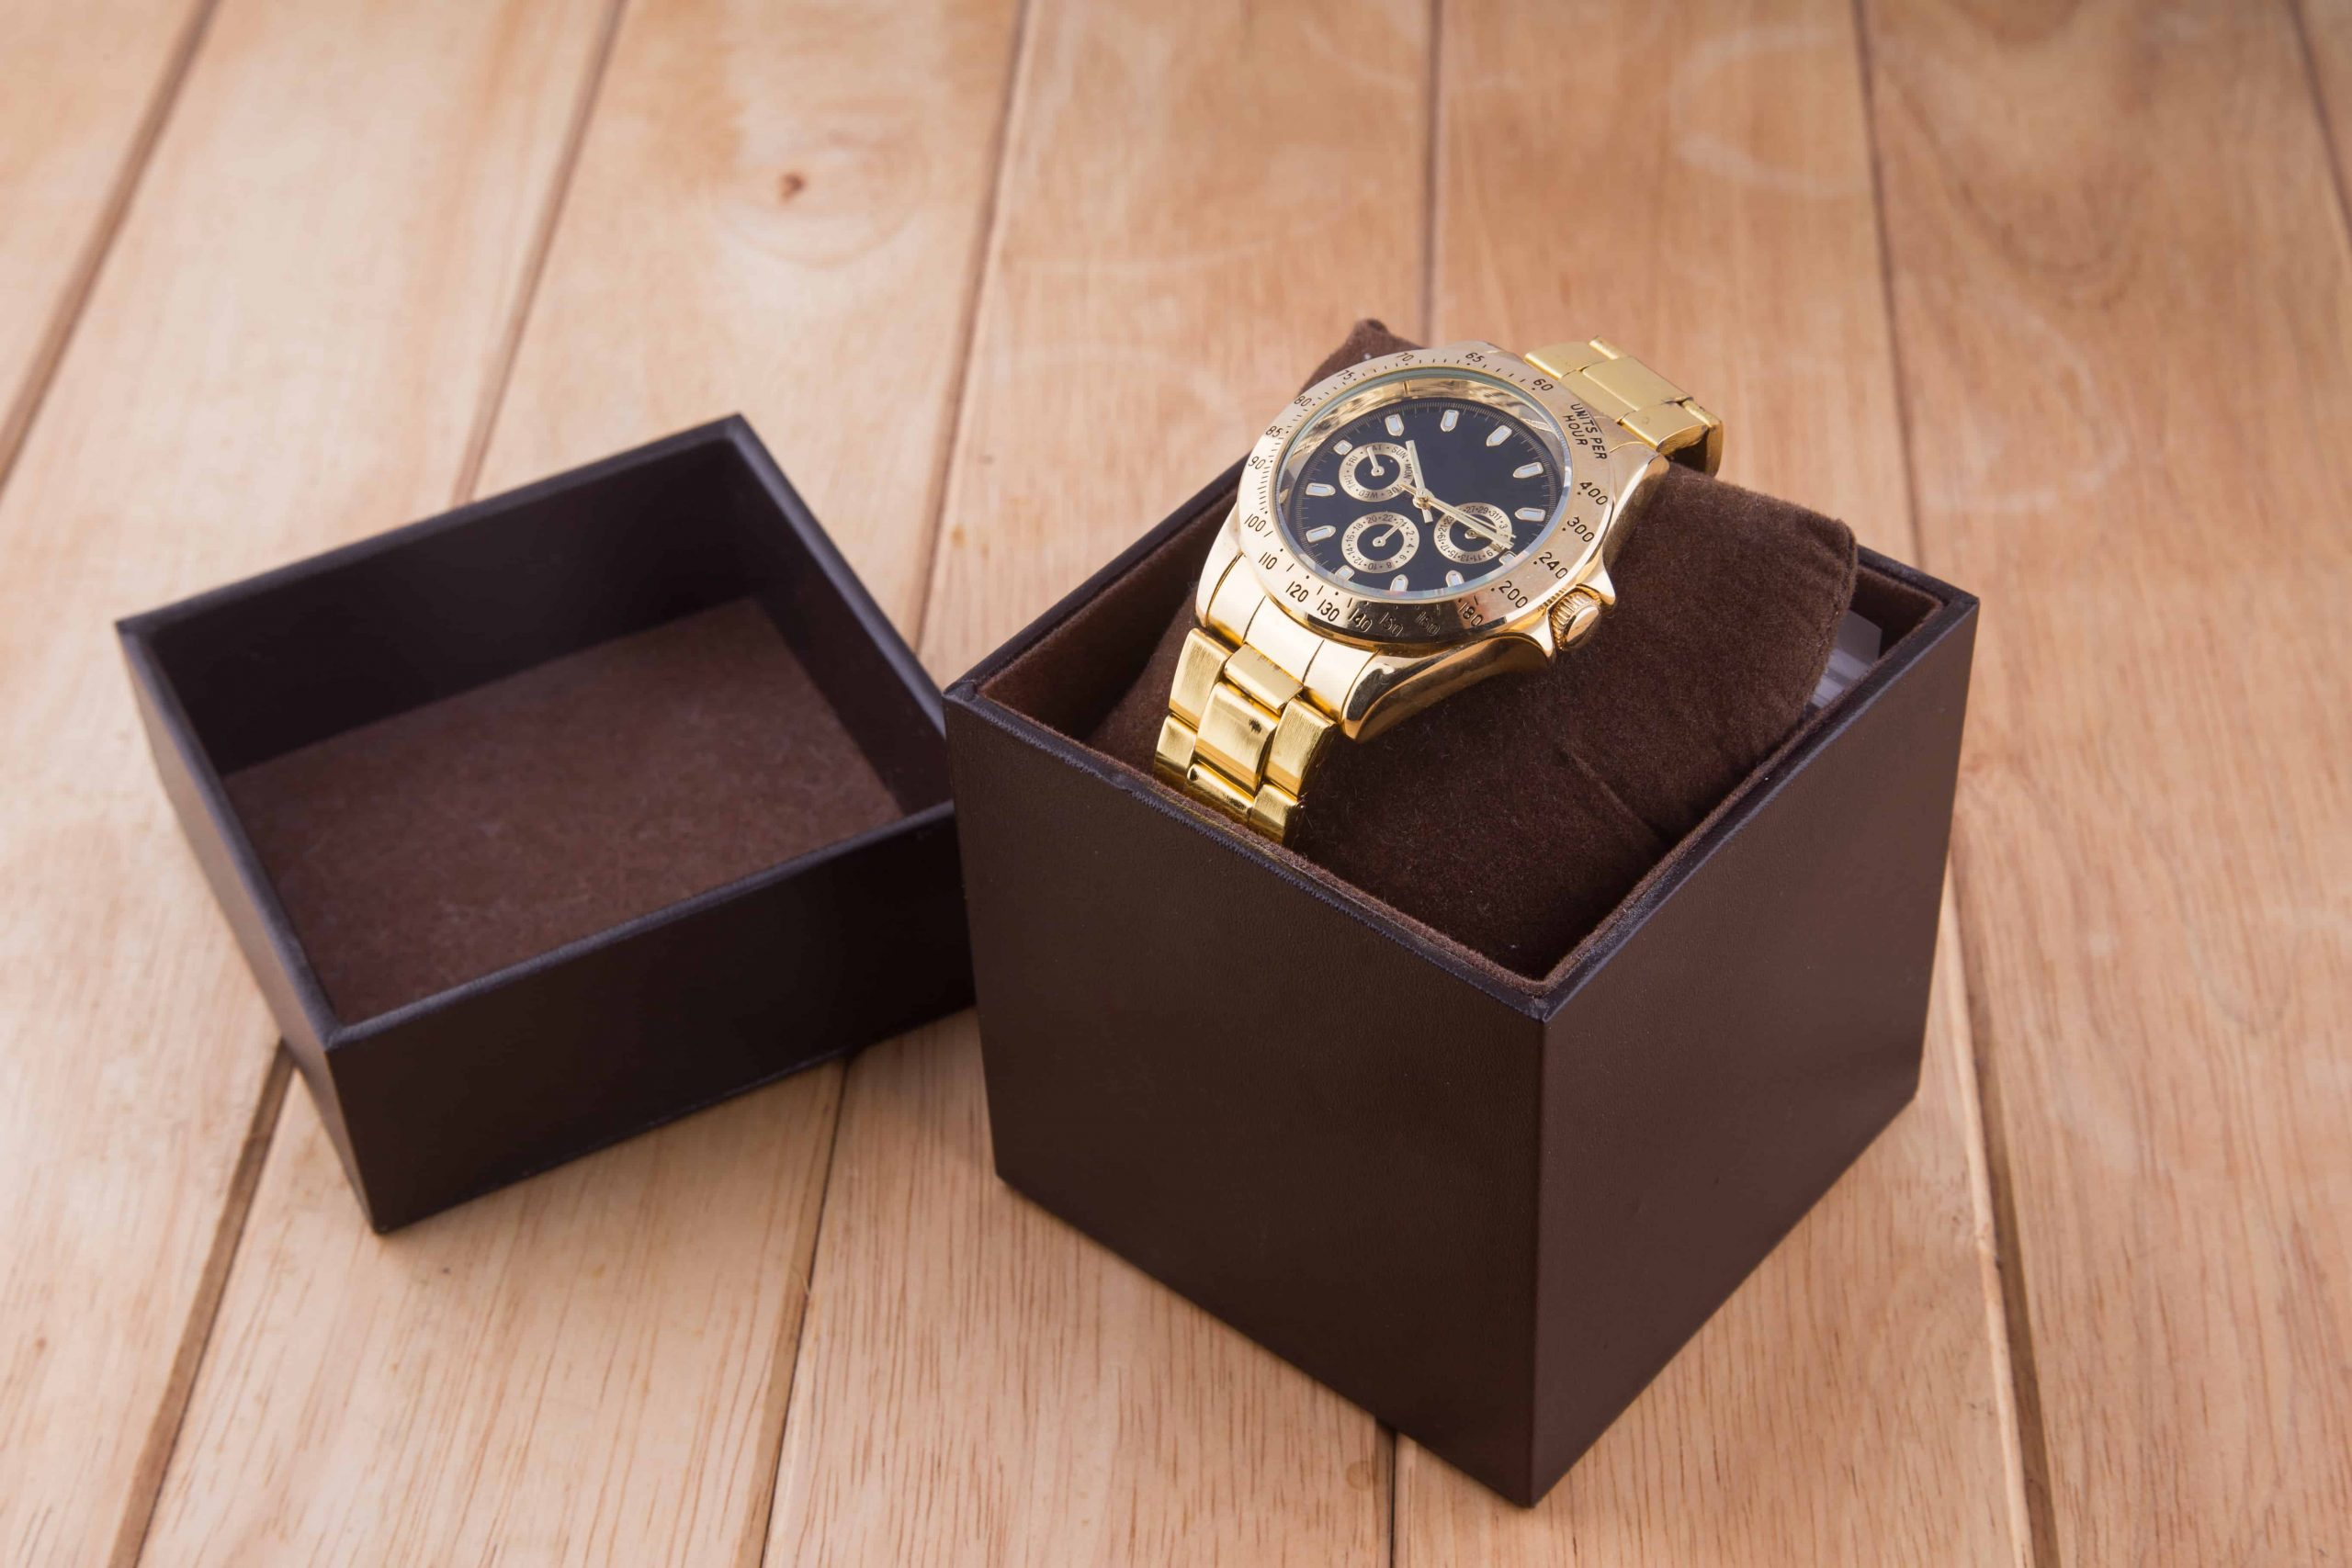 Unboxing watch